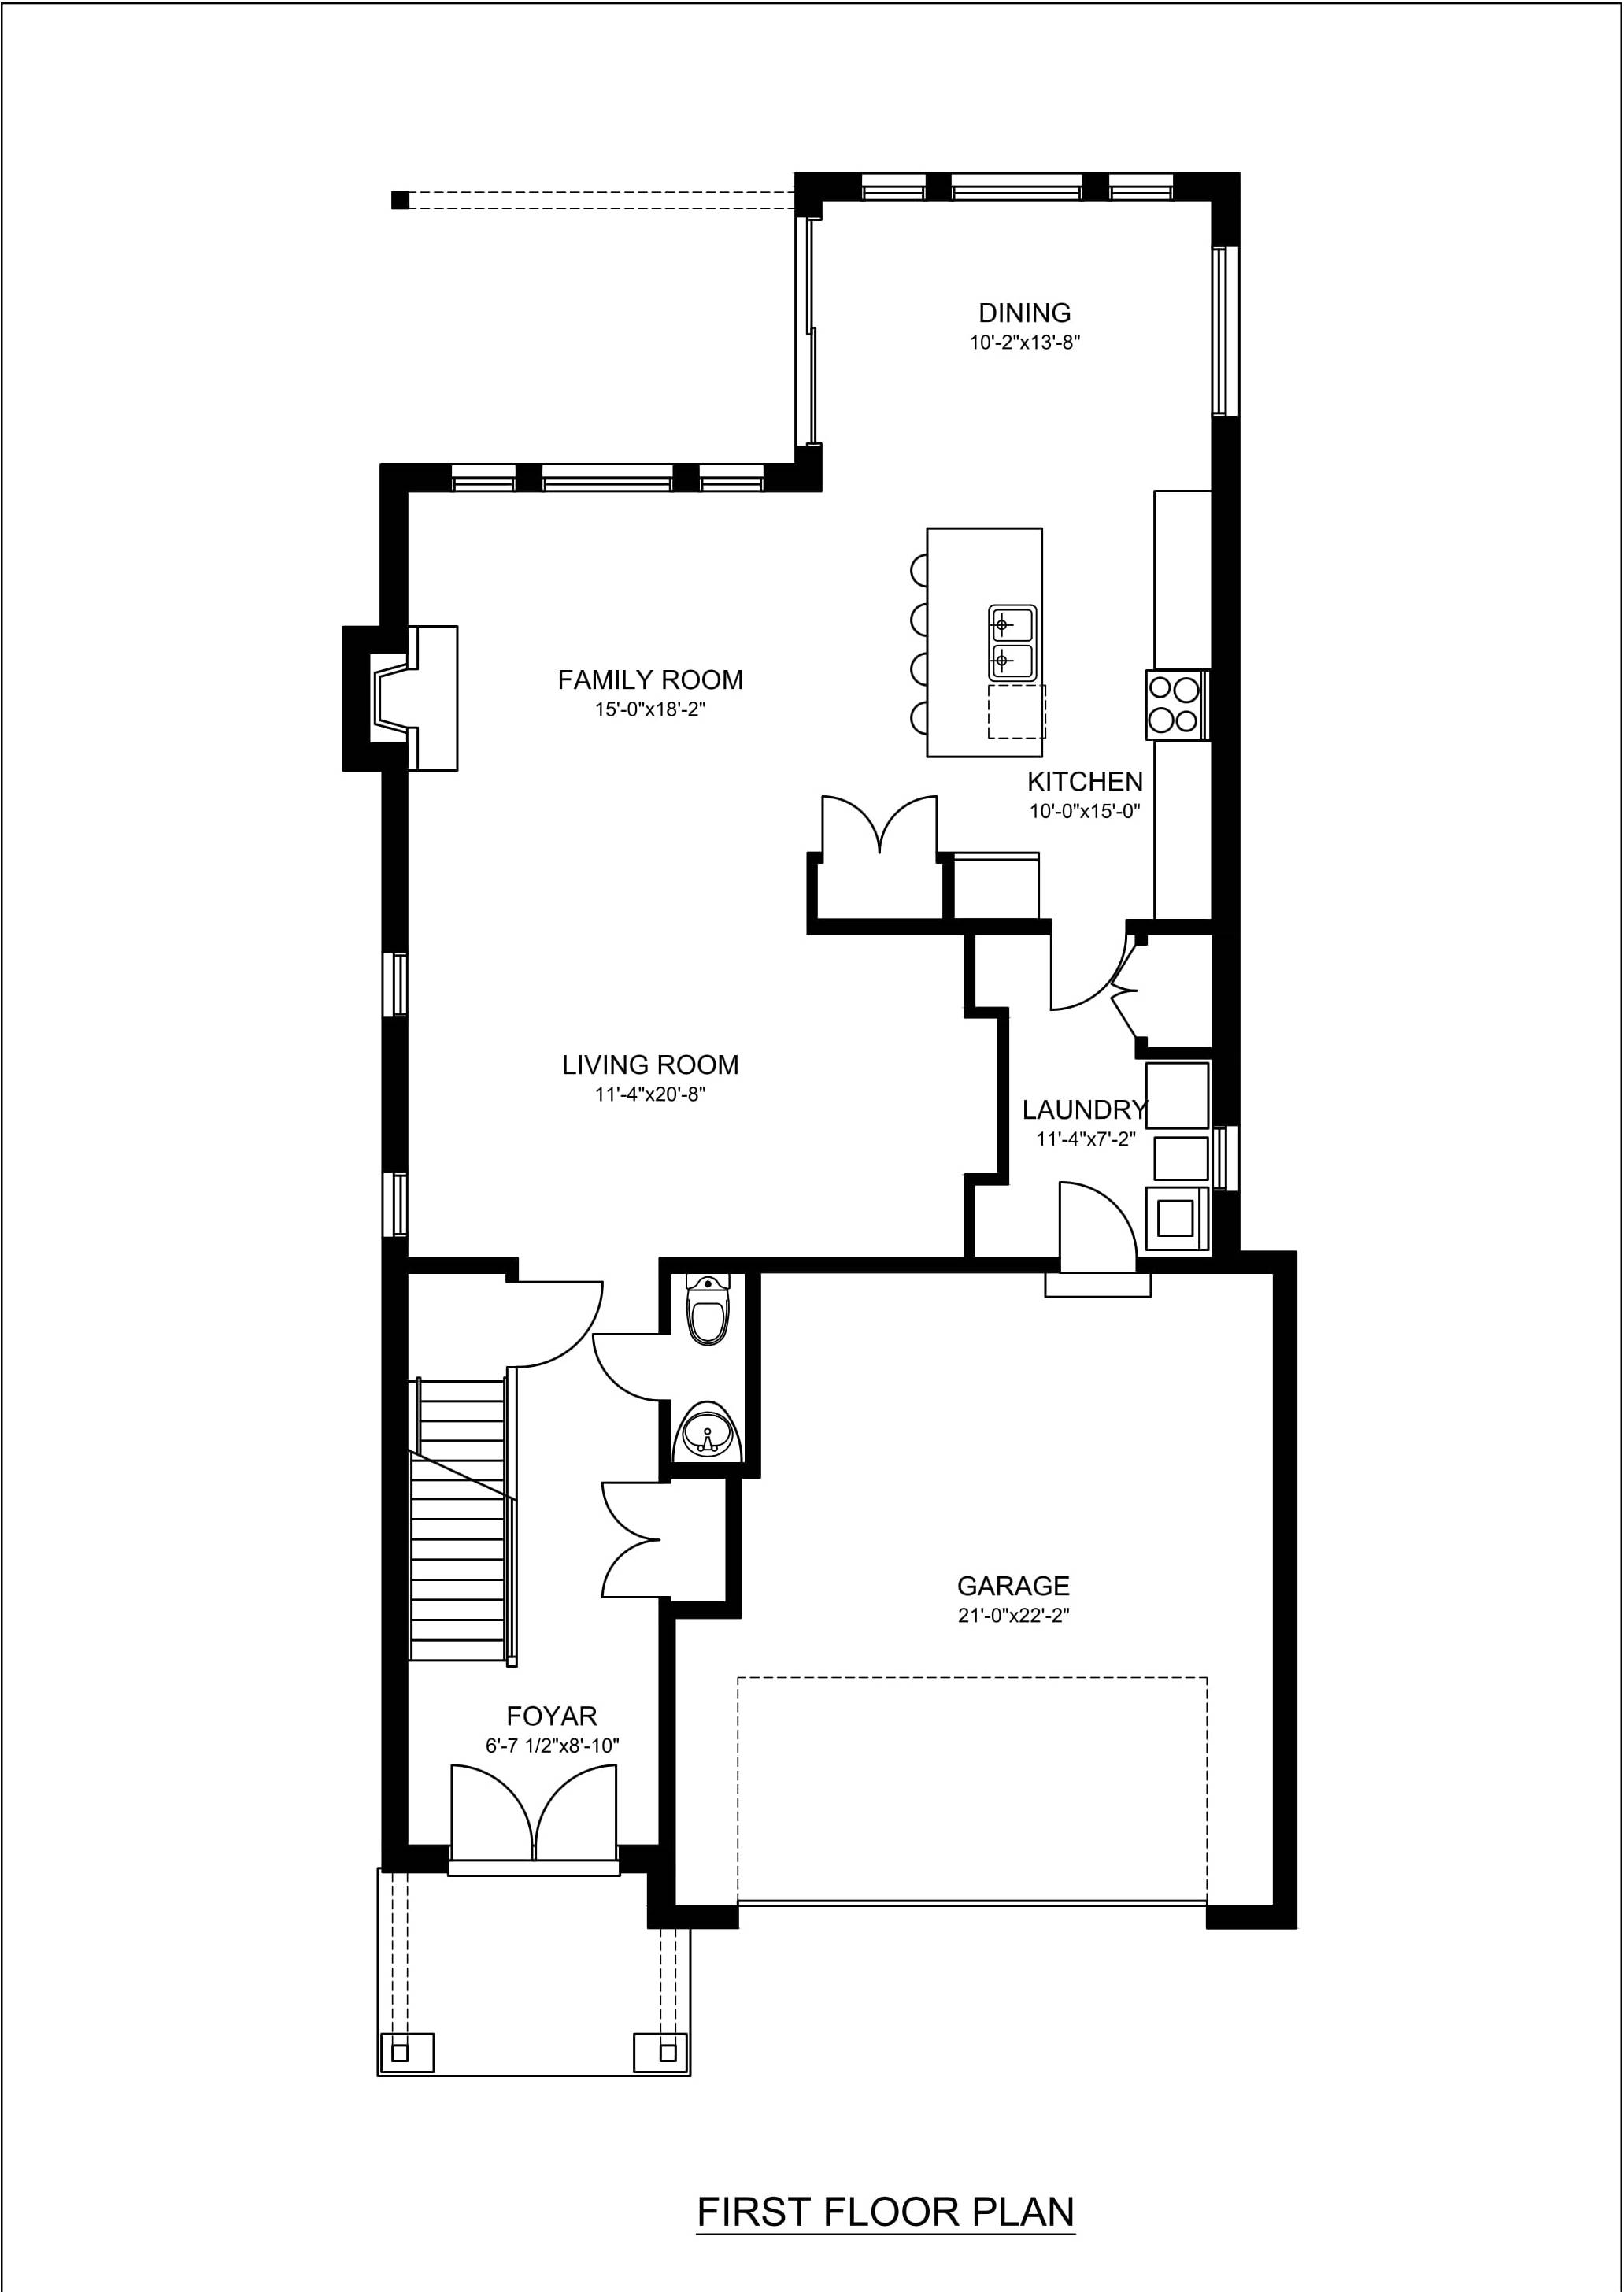 Real Estate 2d Floor Plans Design Rendering Samples